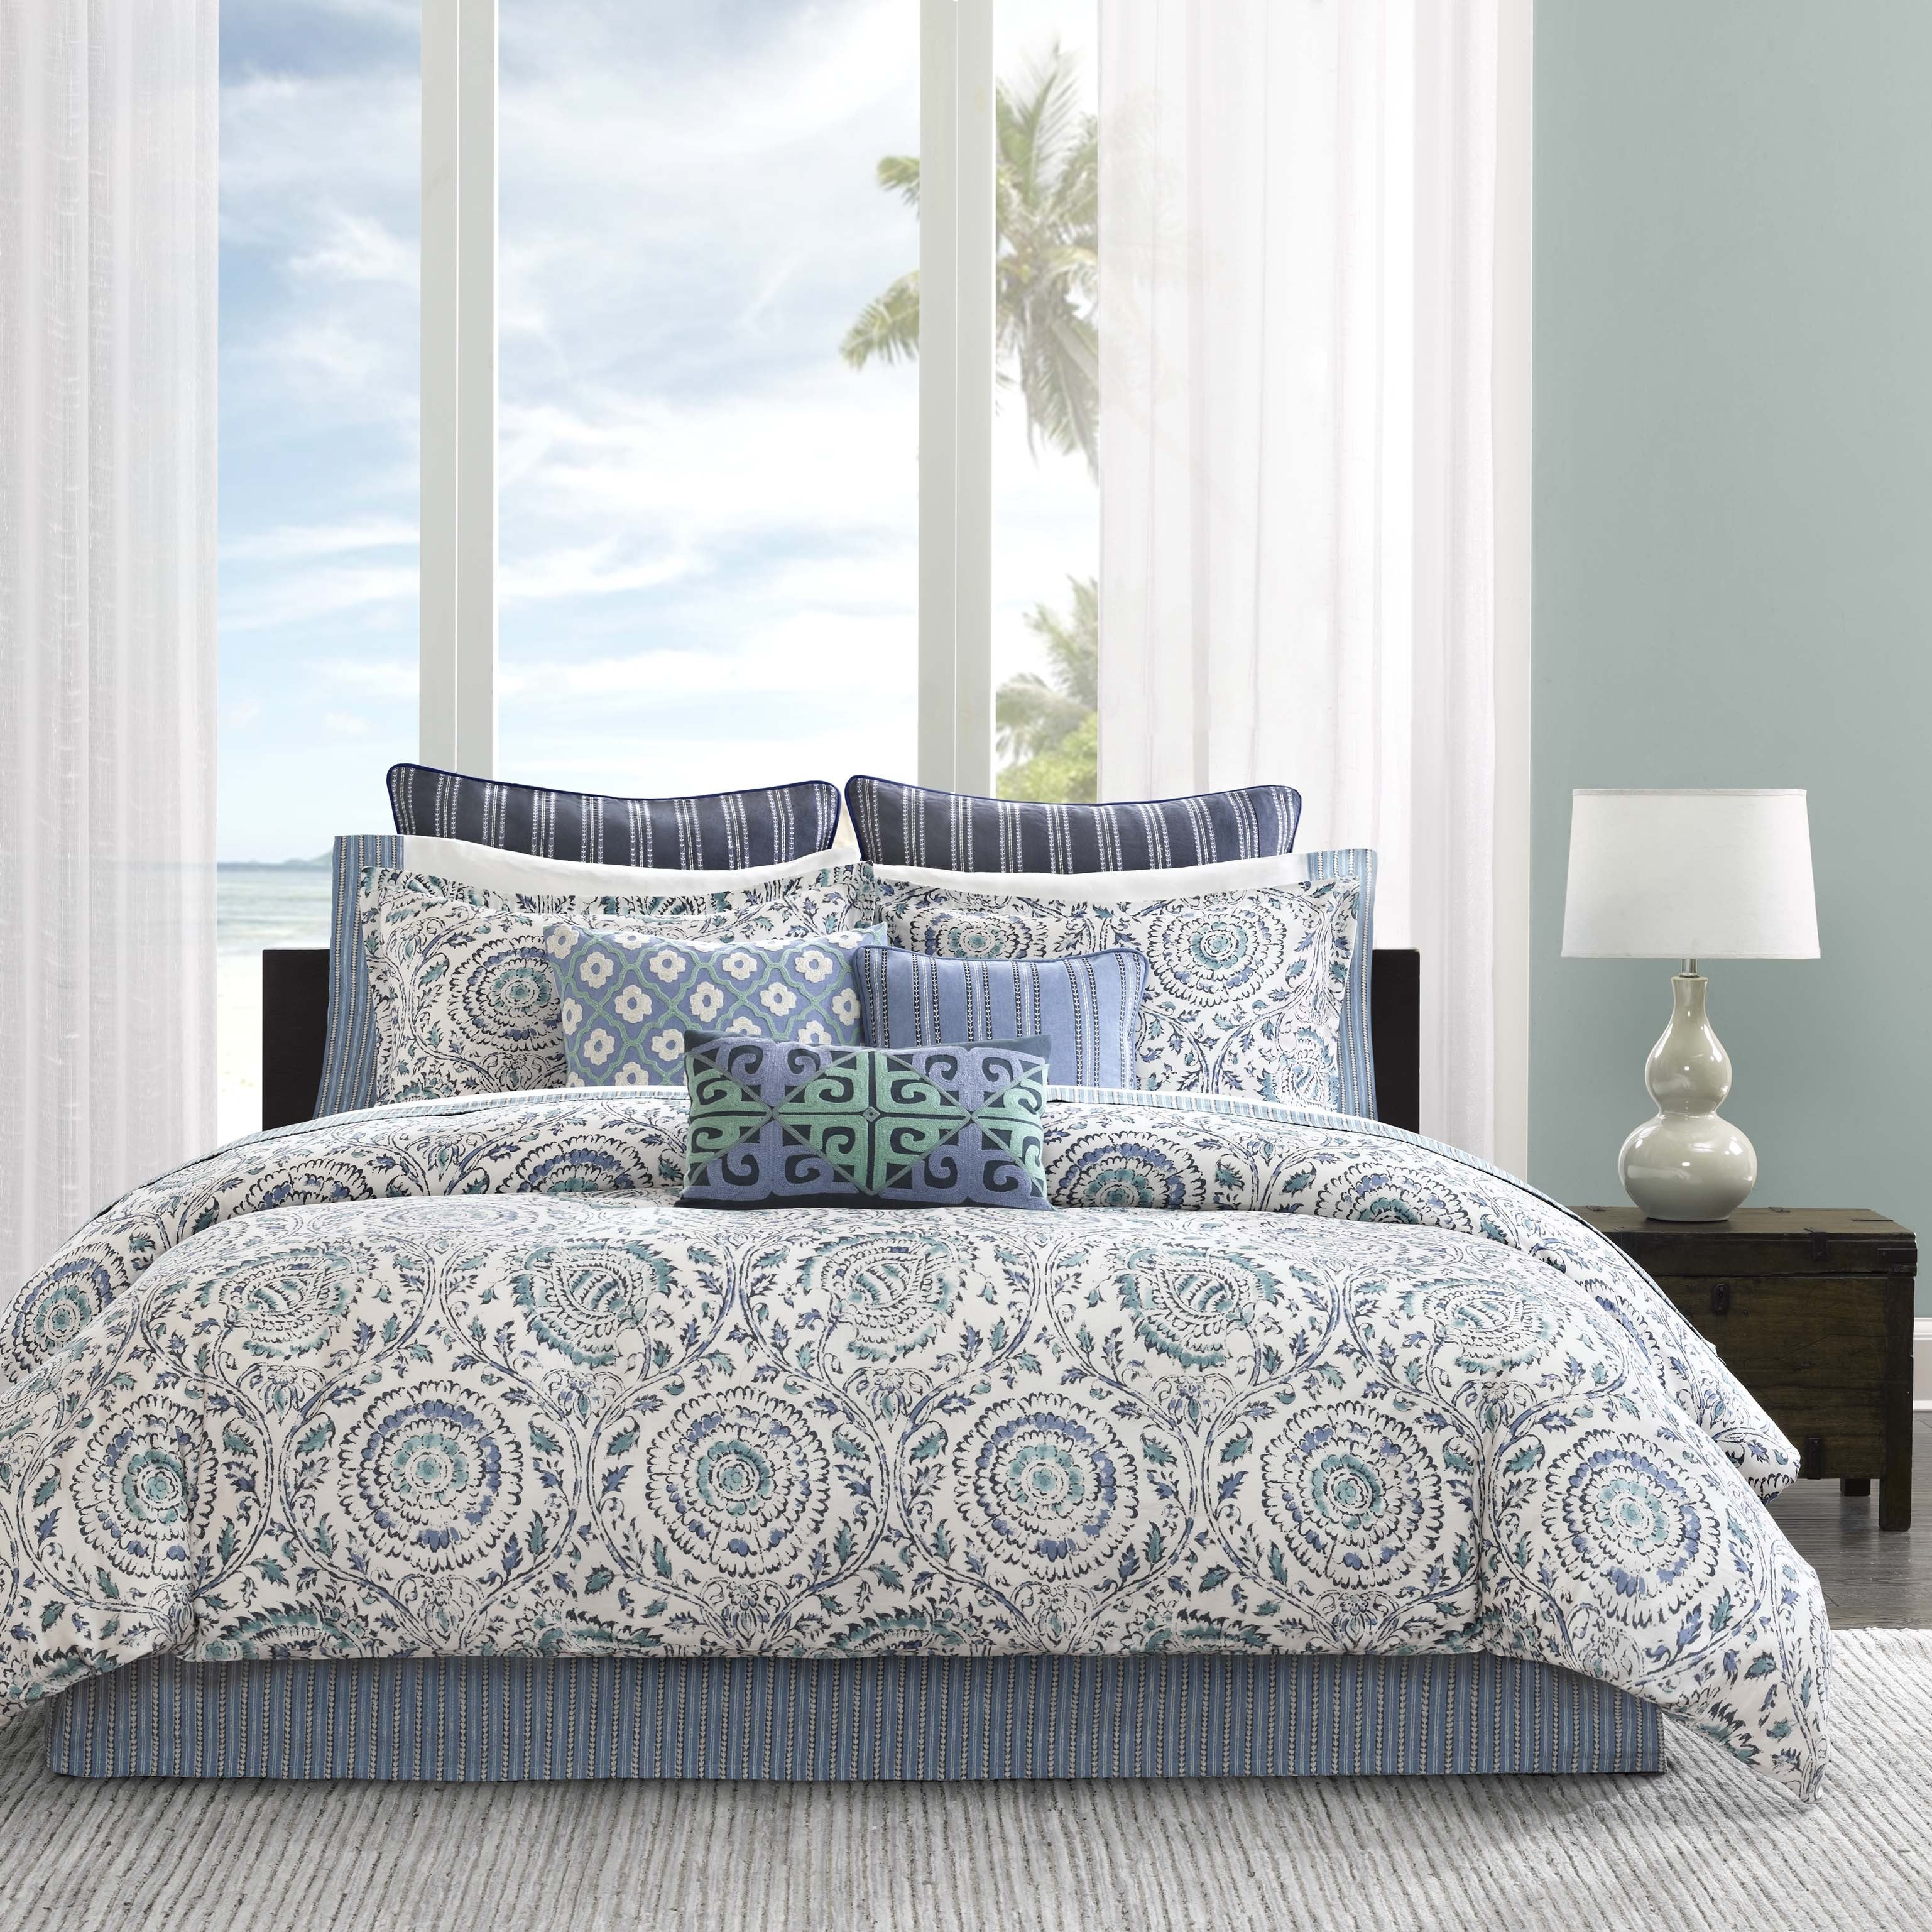 dwellstudio home bedding bed c echo nordstrom